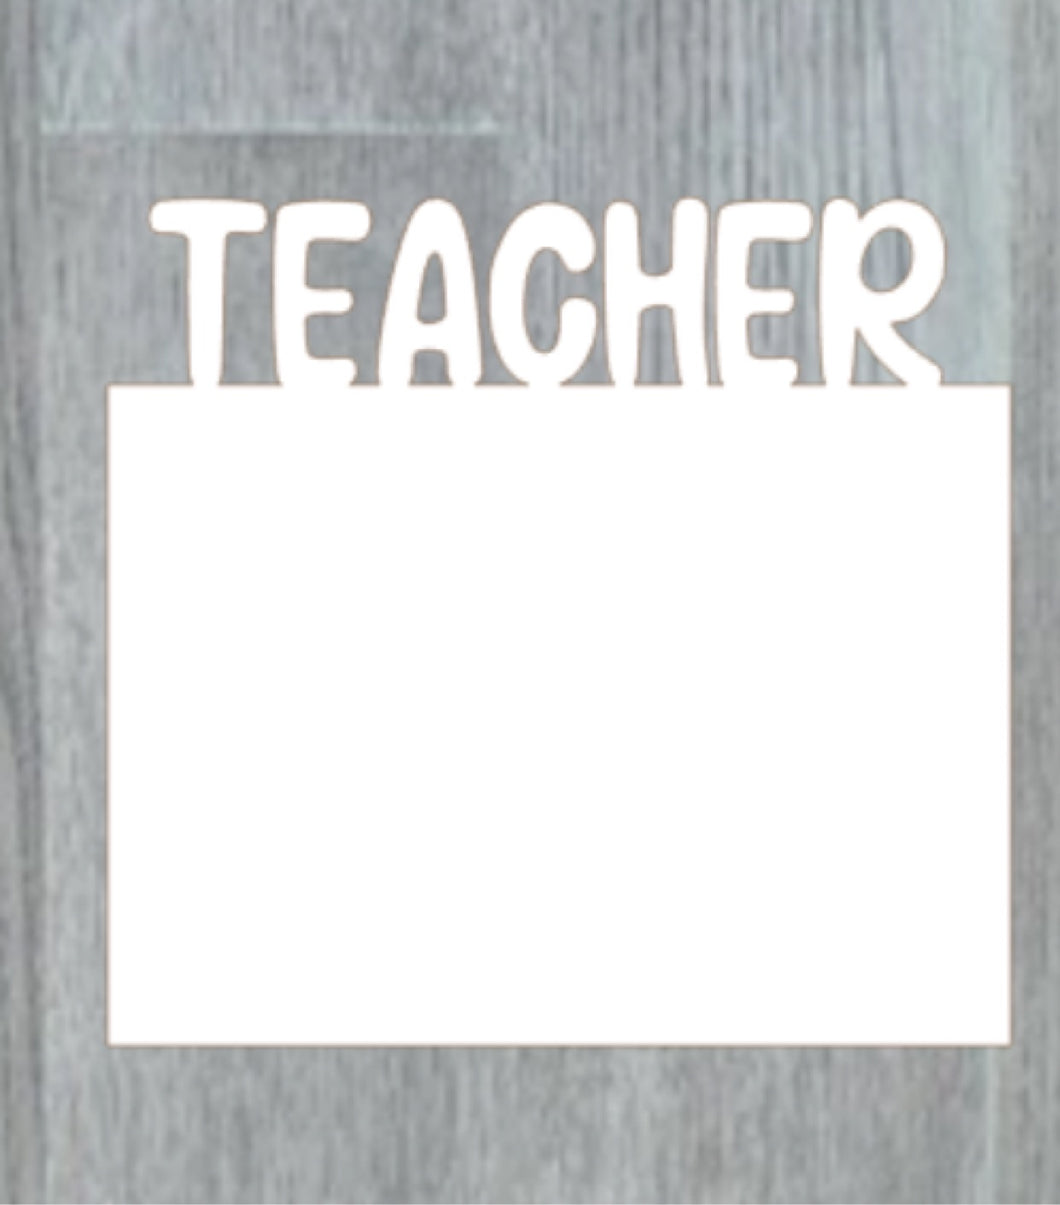 Teacher photo panel